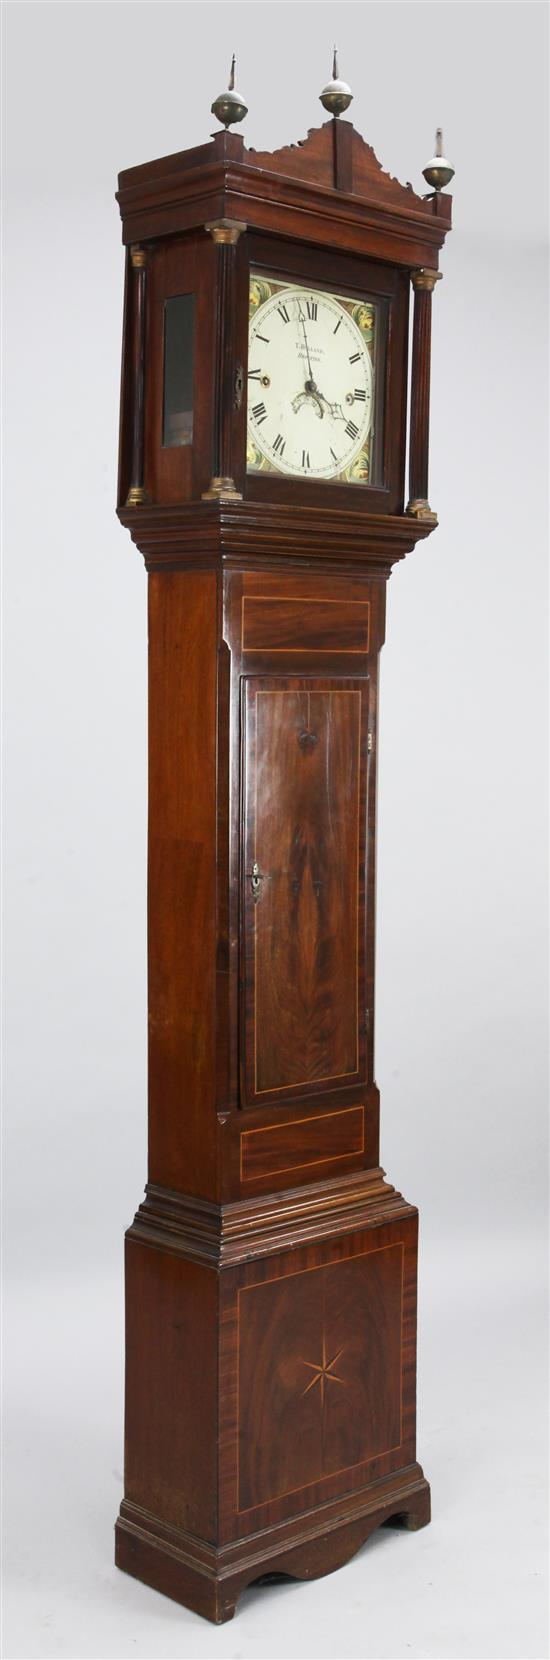 T.Holland of Brighton. An early 19th century inlaid mahogany eight day longcase clock, 7ft 5in.